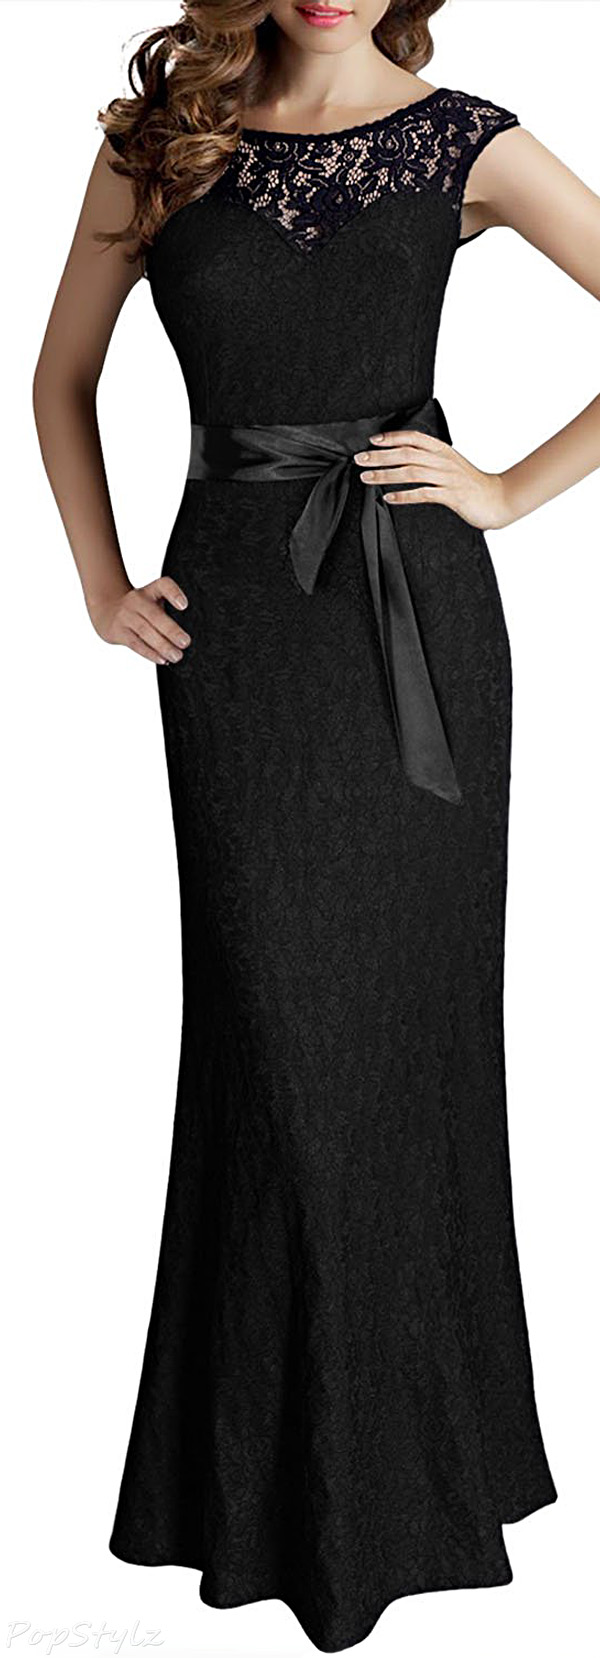 MIUSOL Sleeveless Halter Black Lace Maxi Dress